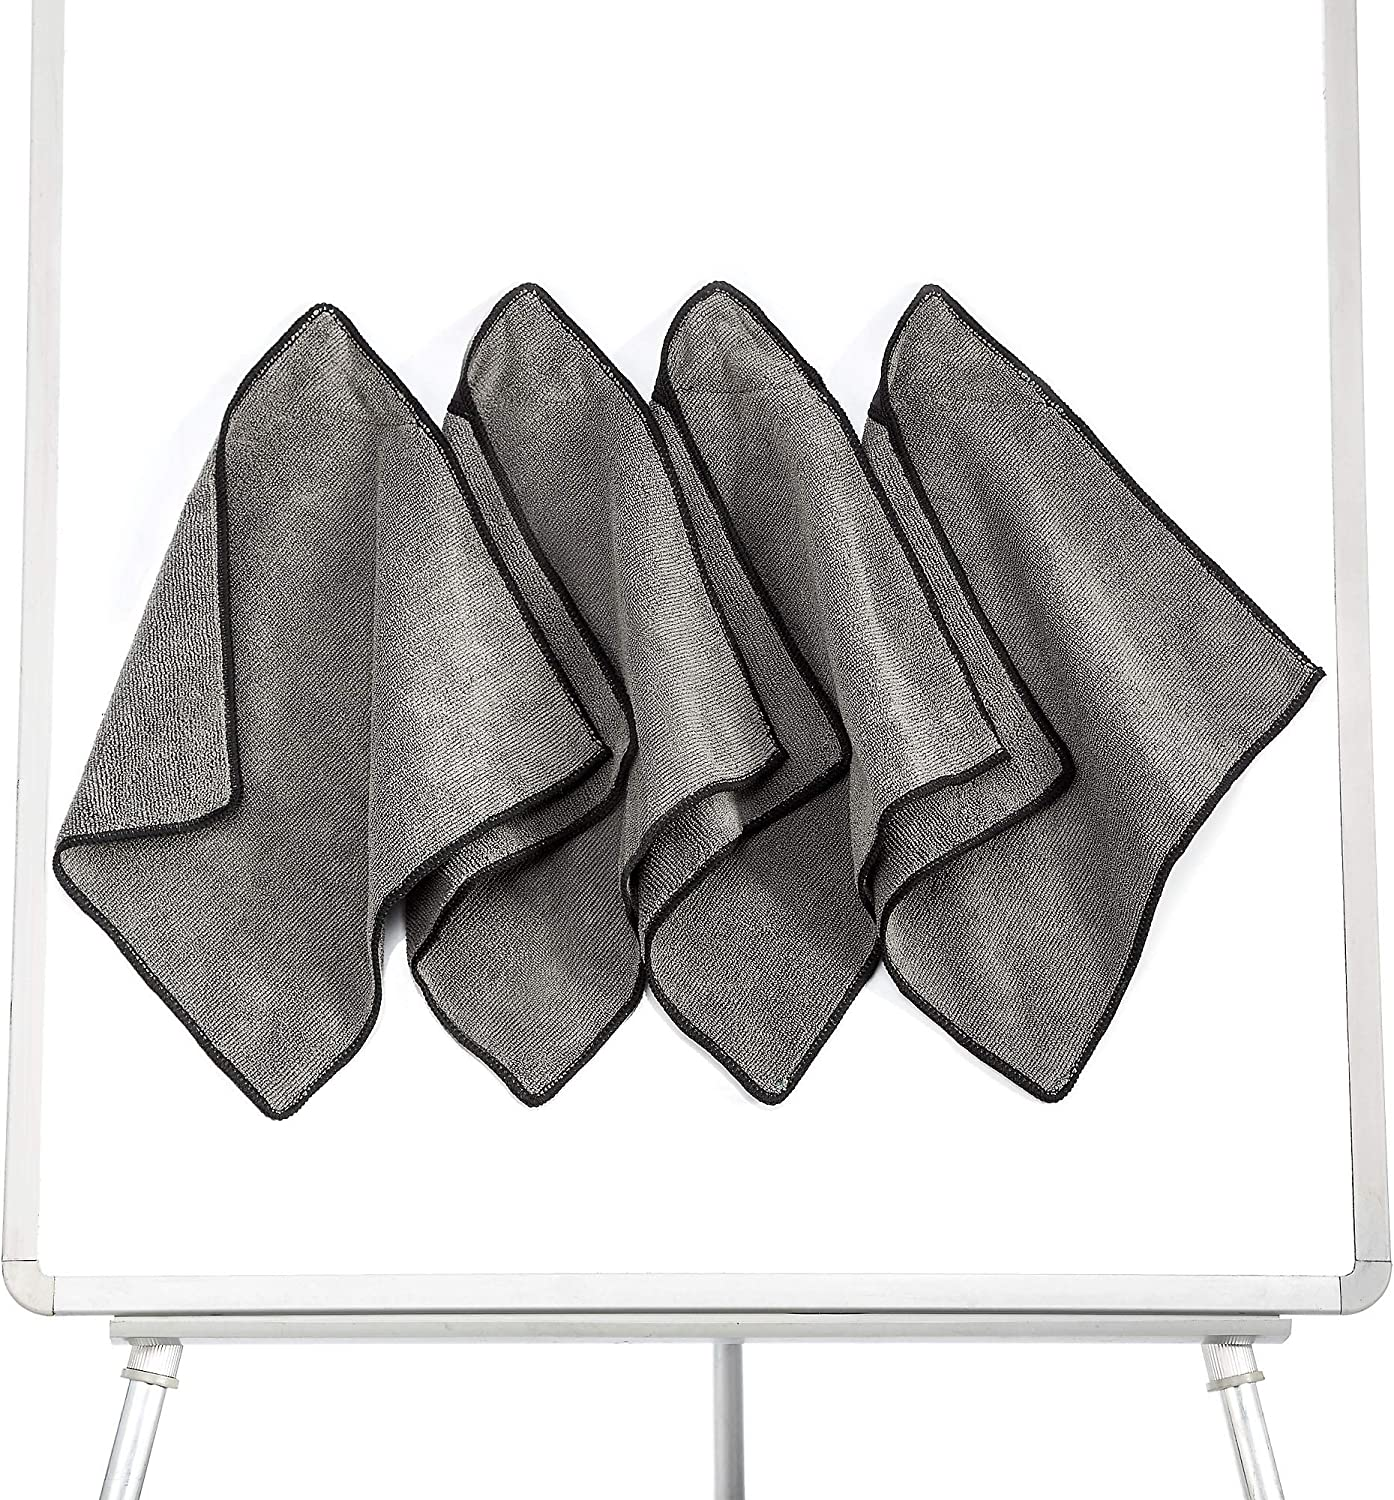 Microfiber Magnetic Dry Erase Eraser Cleaning Cloth for Whiteboards, Reusable and Washable Whiteboard Eraser Towels, Multipurpose Rags for Classroom,School, Office,Home,Kitchen (Pack of 4)